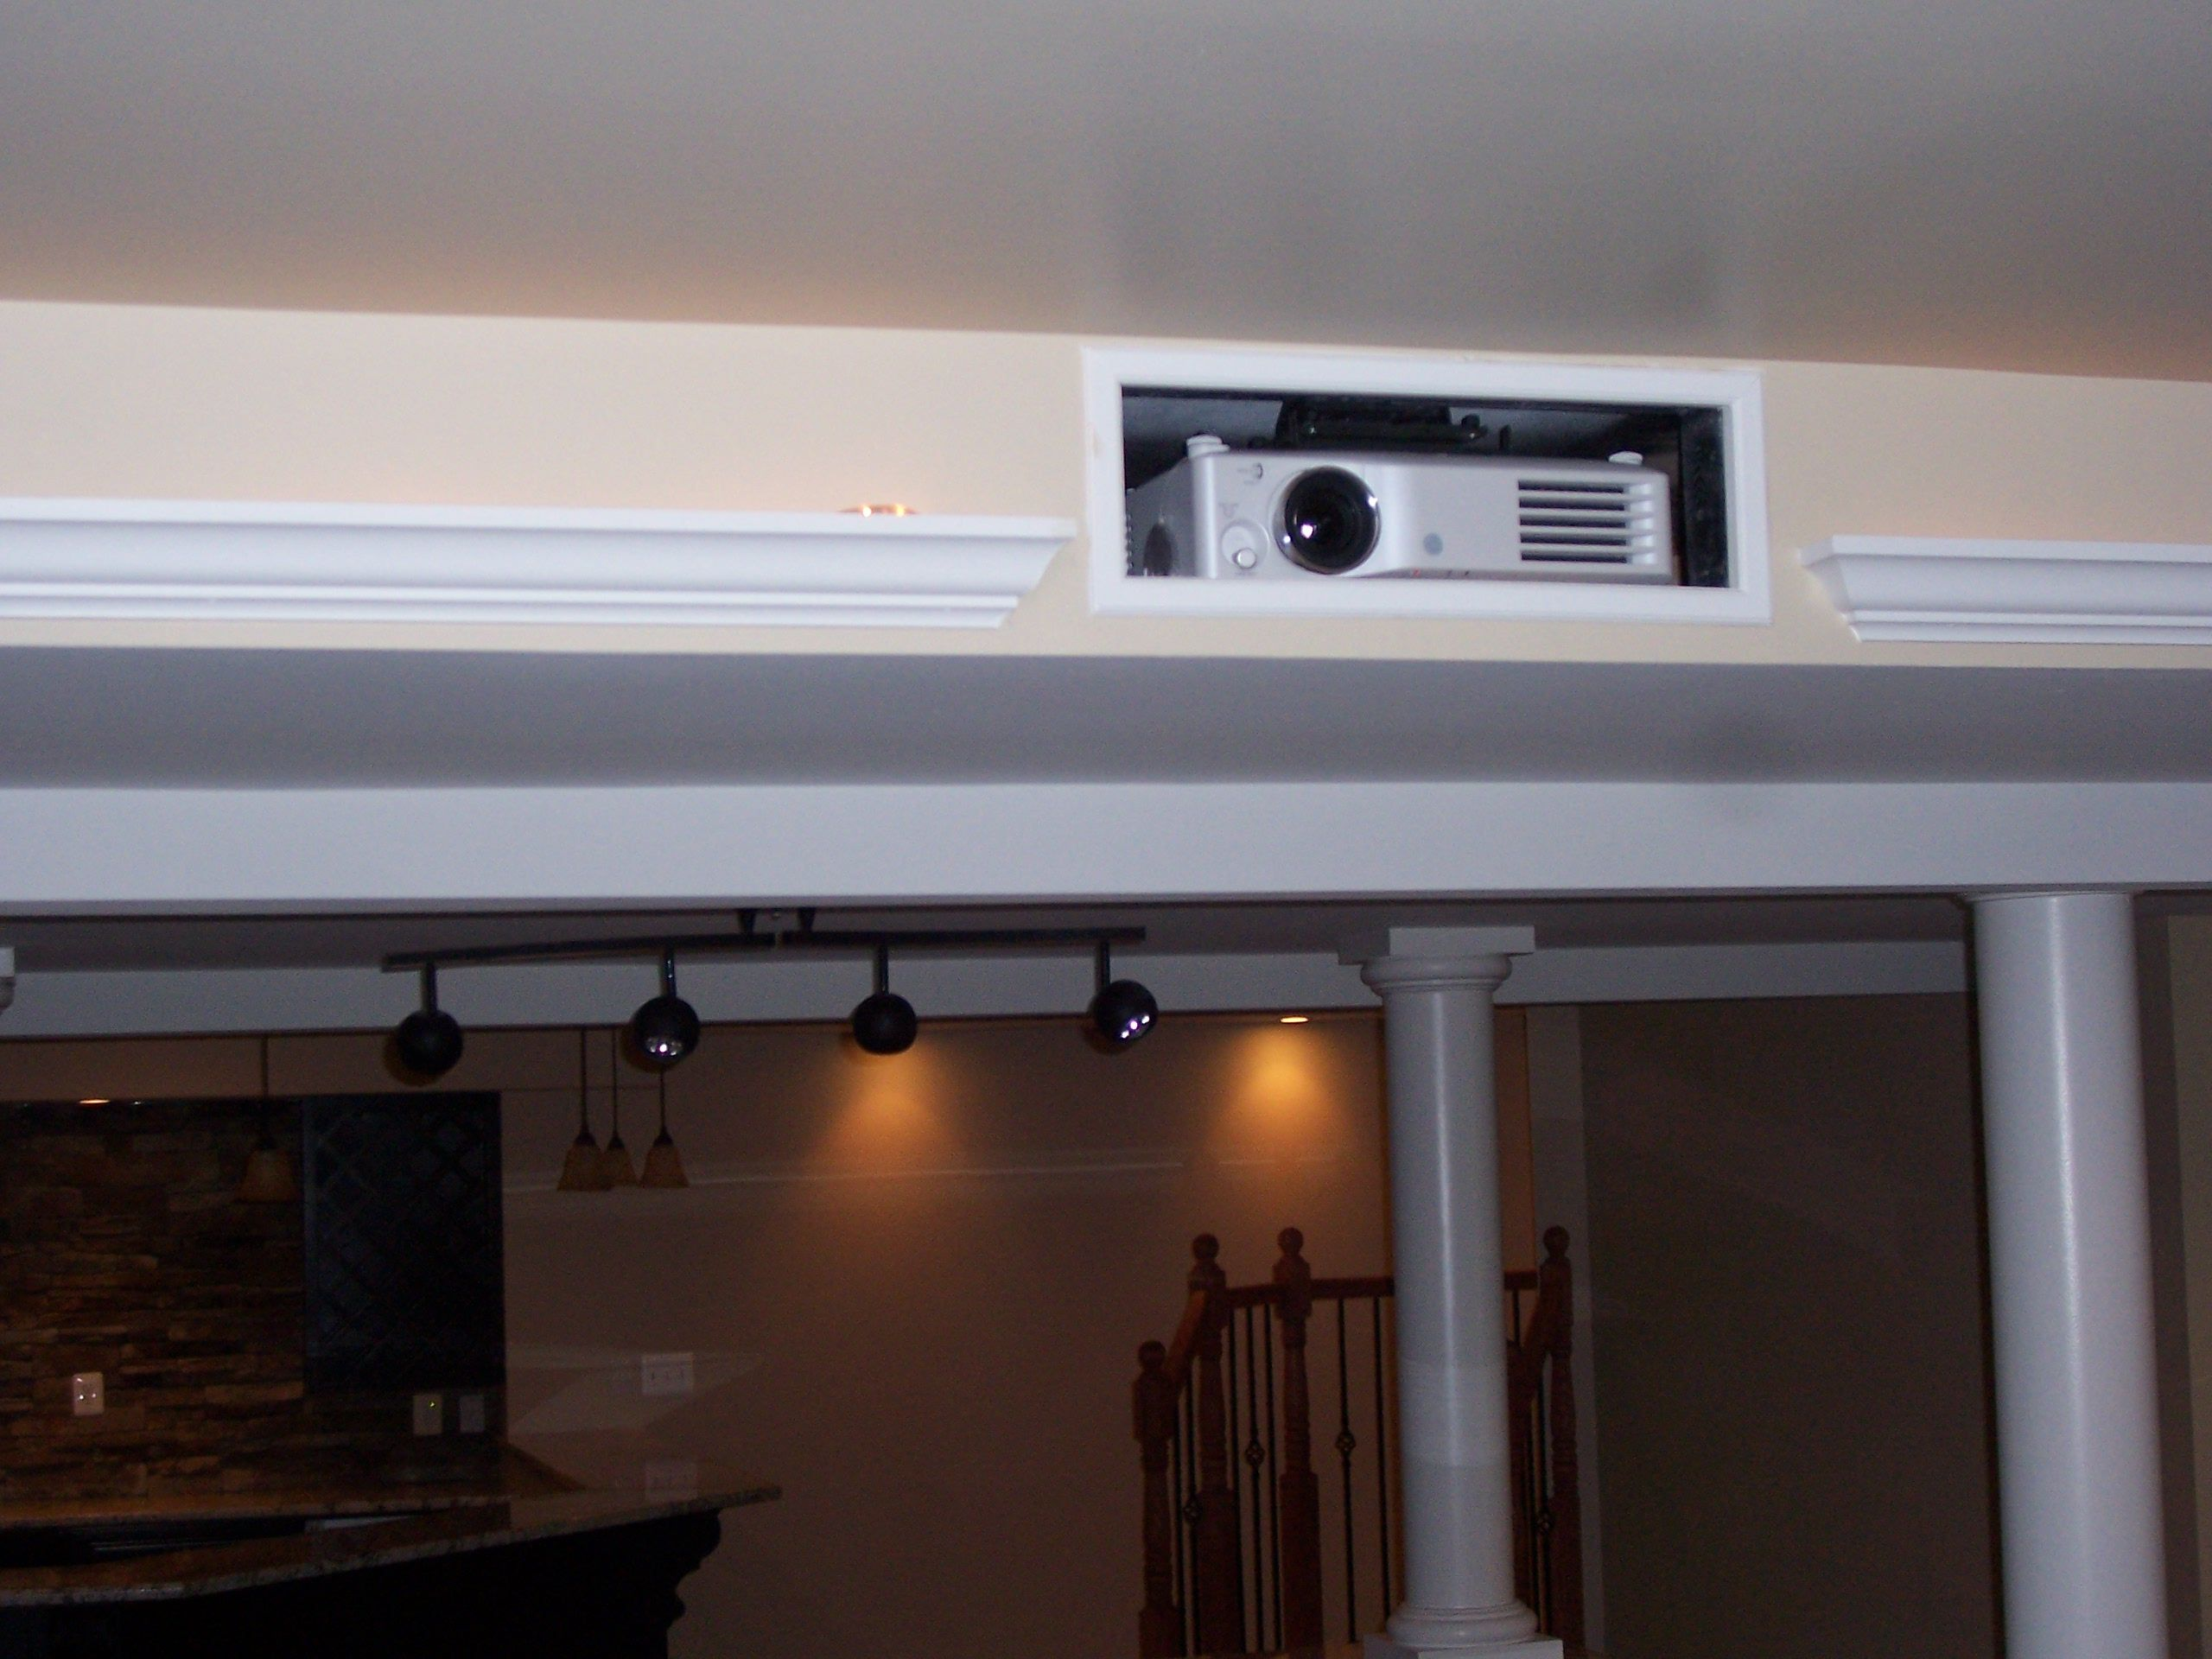 Basement home theater rooms - Projector For My Home Theater Room In The Basement